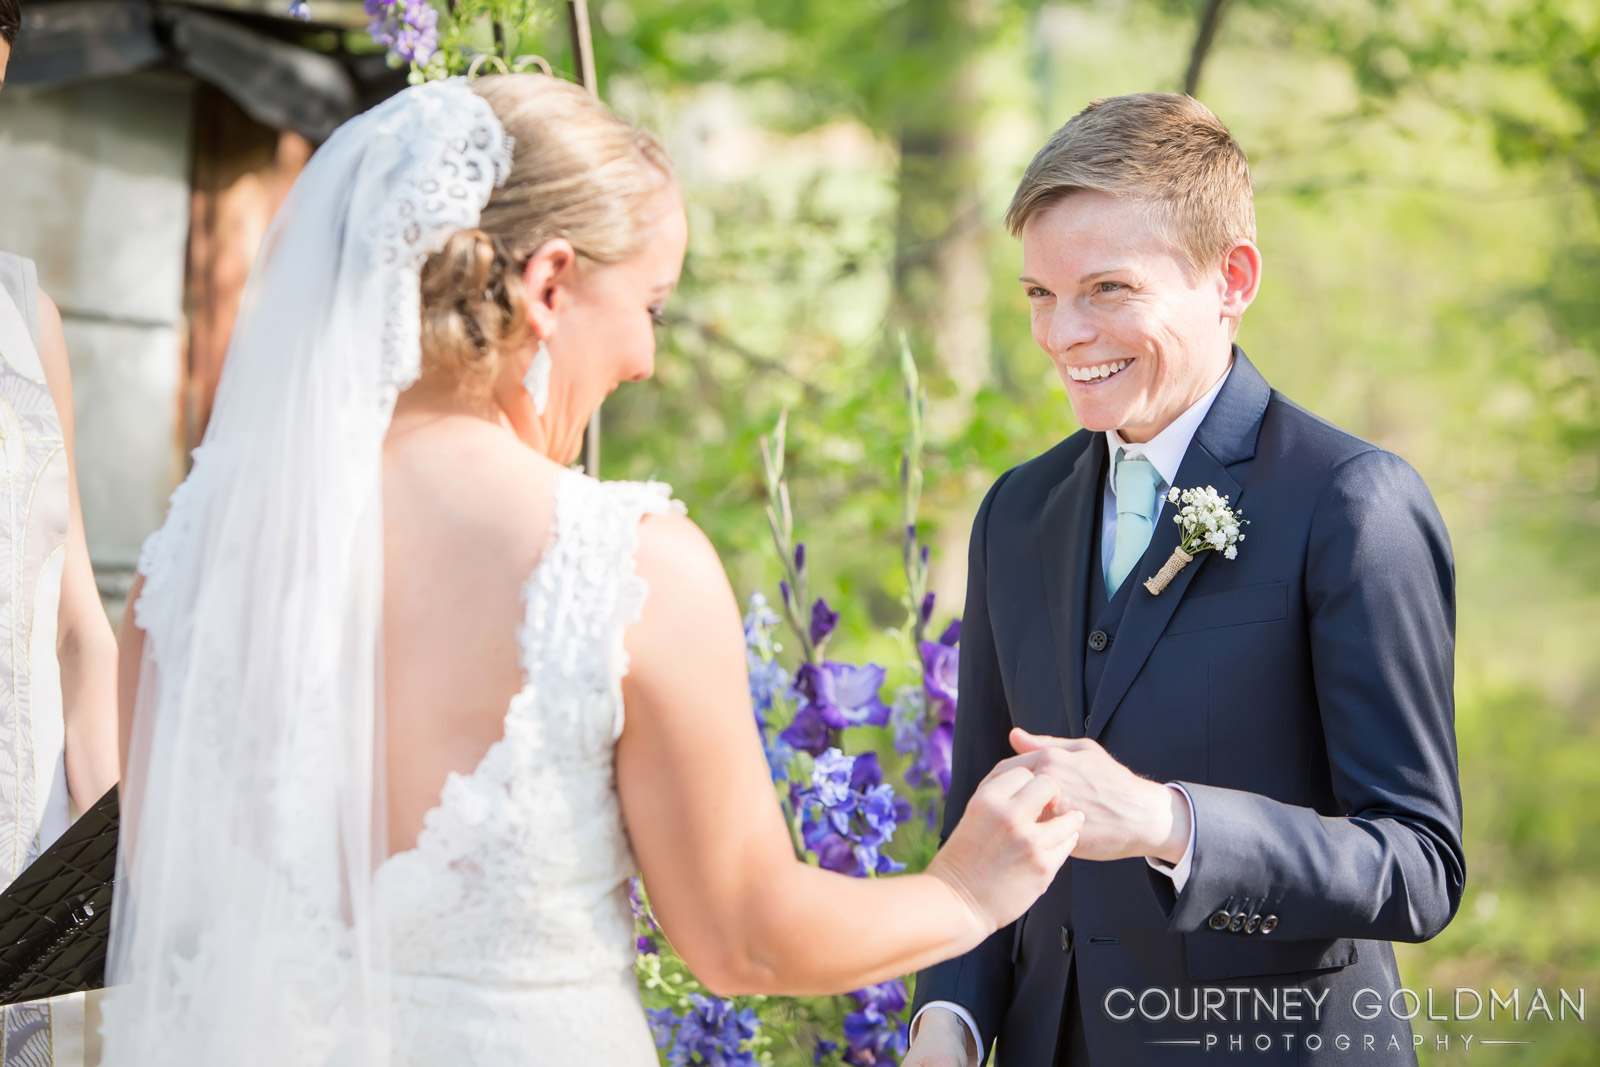 Atlanta-Wedding-Photography-by-Courtney-Goldman-62.jpg